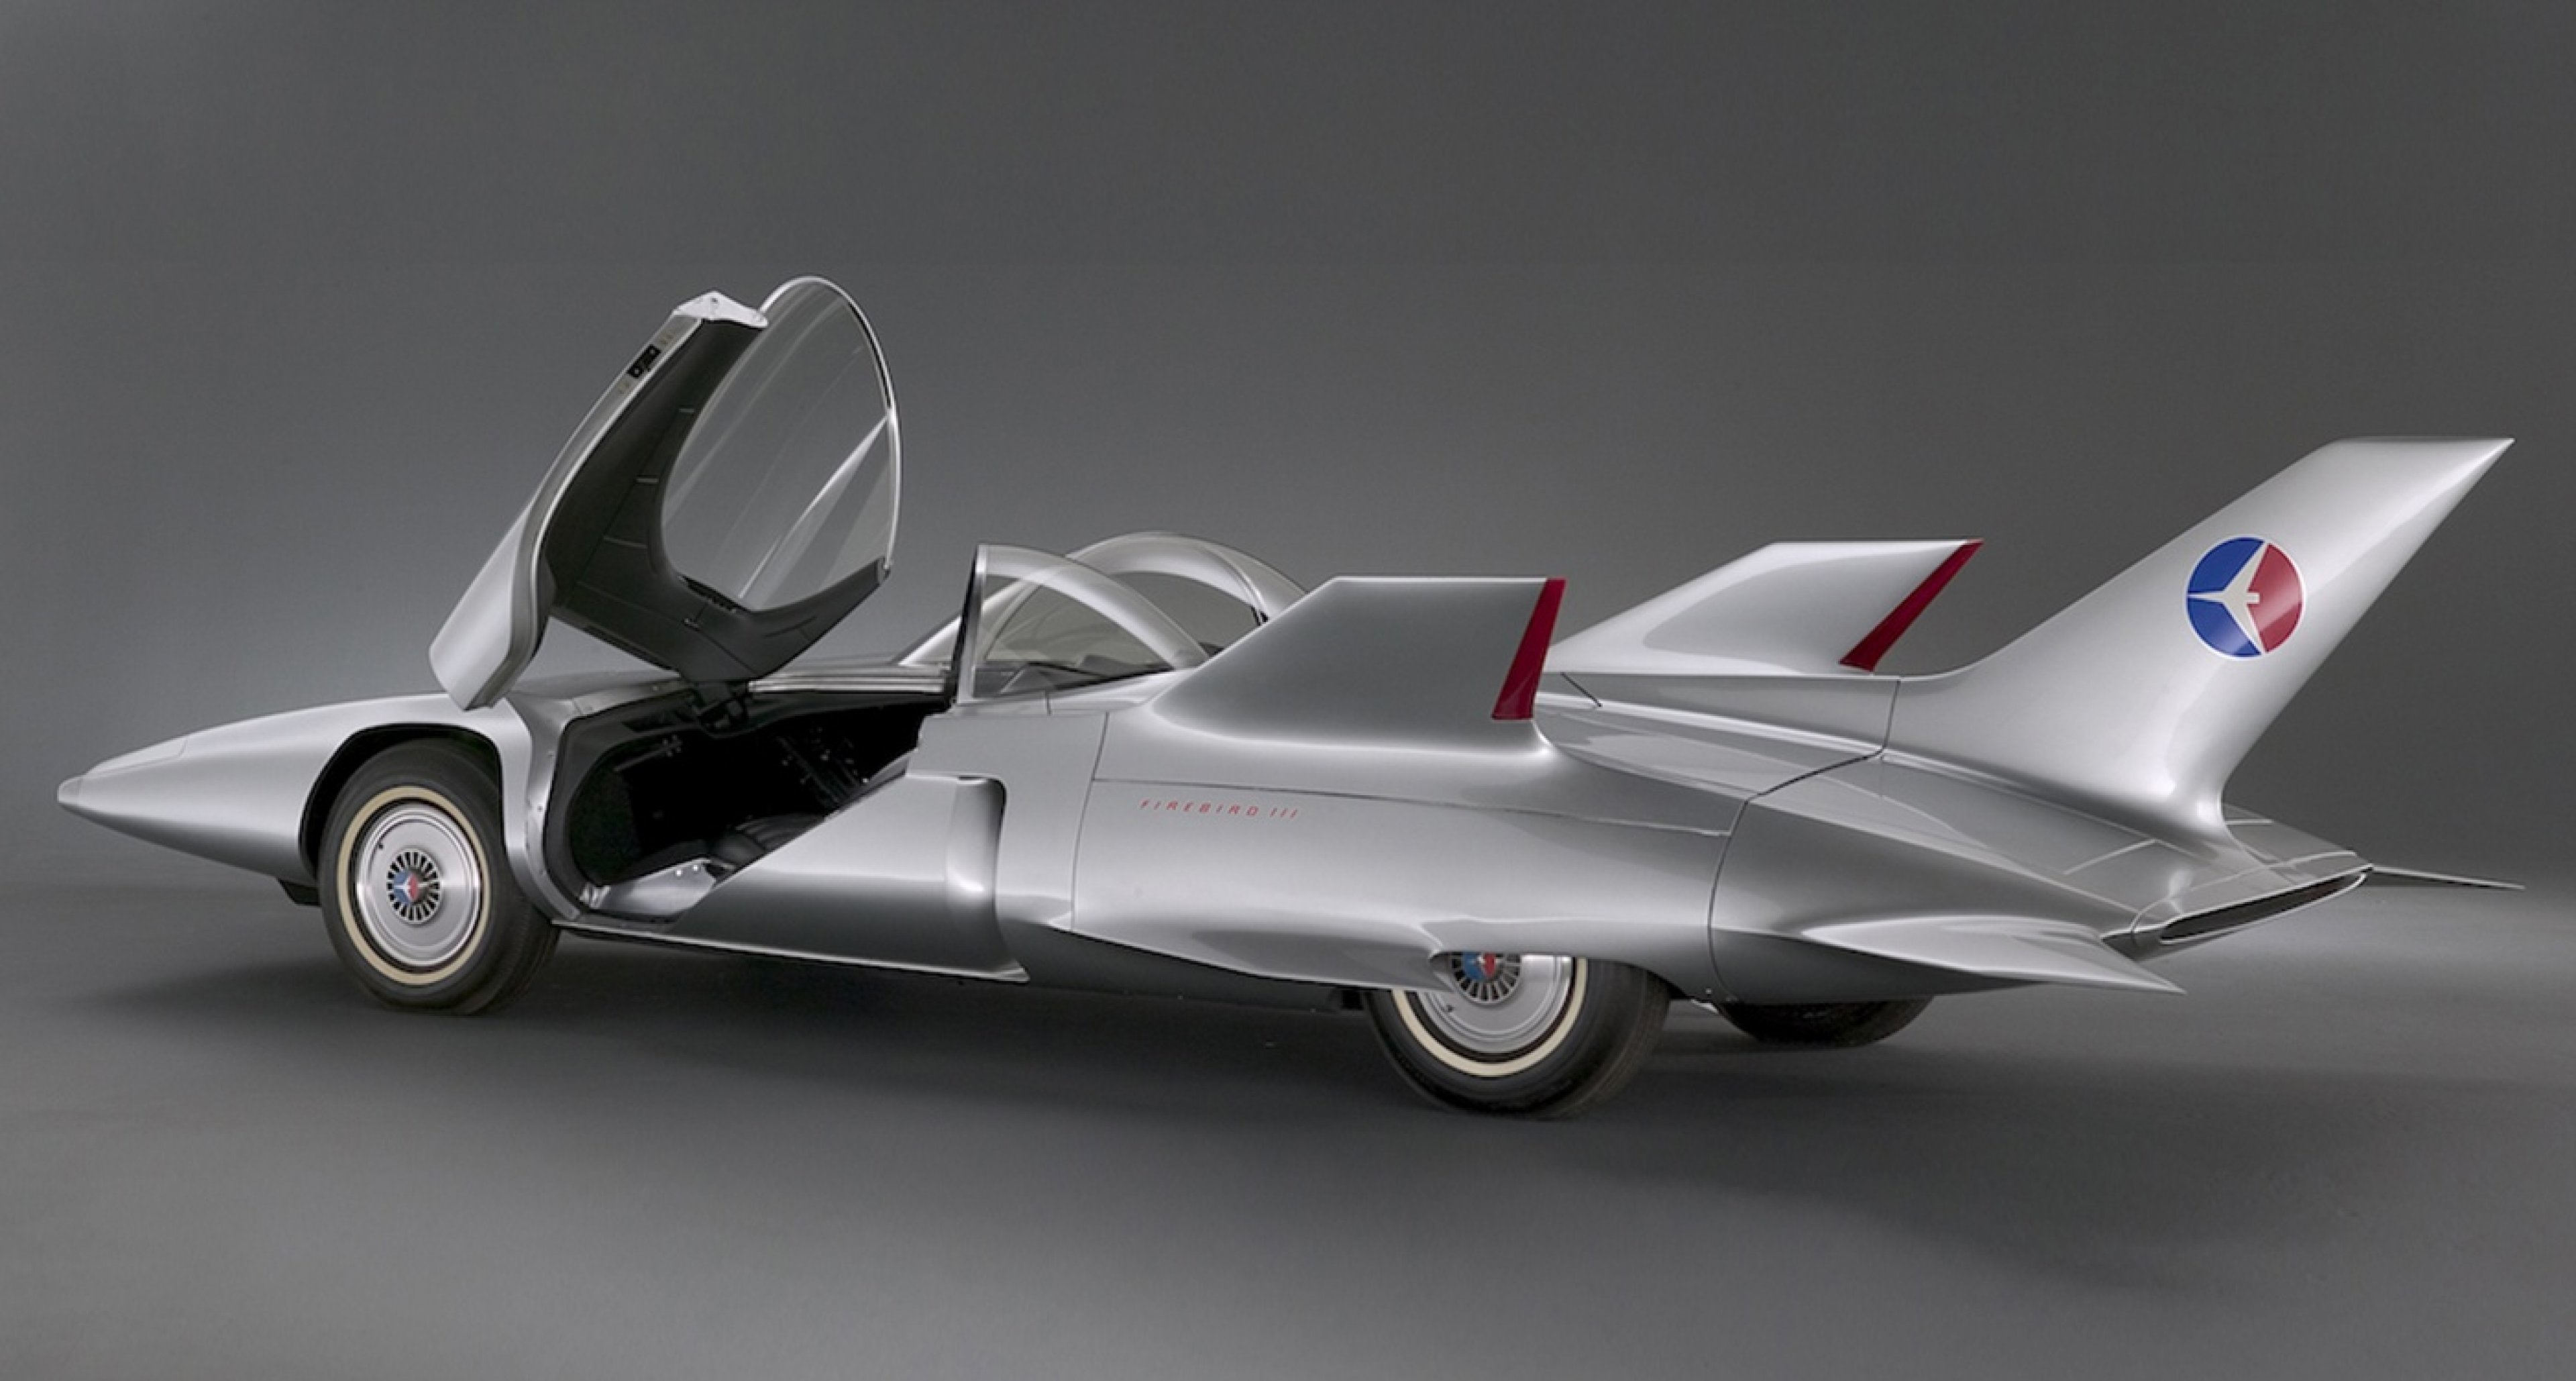 GM Firebird III. Photo from GM Media Archive.